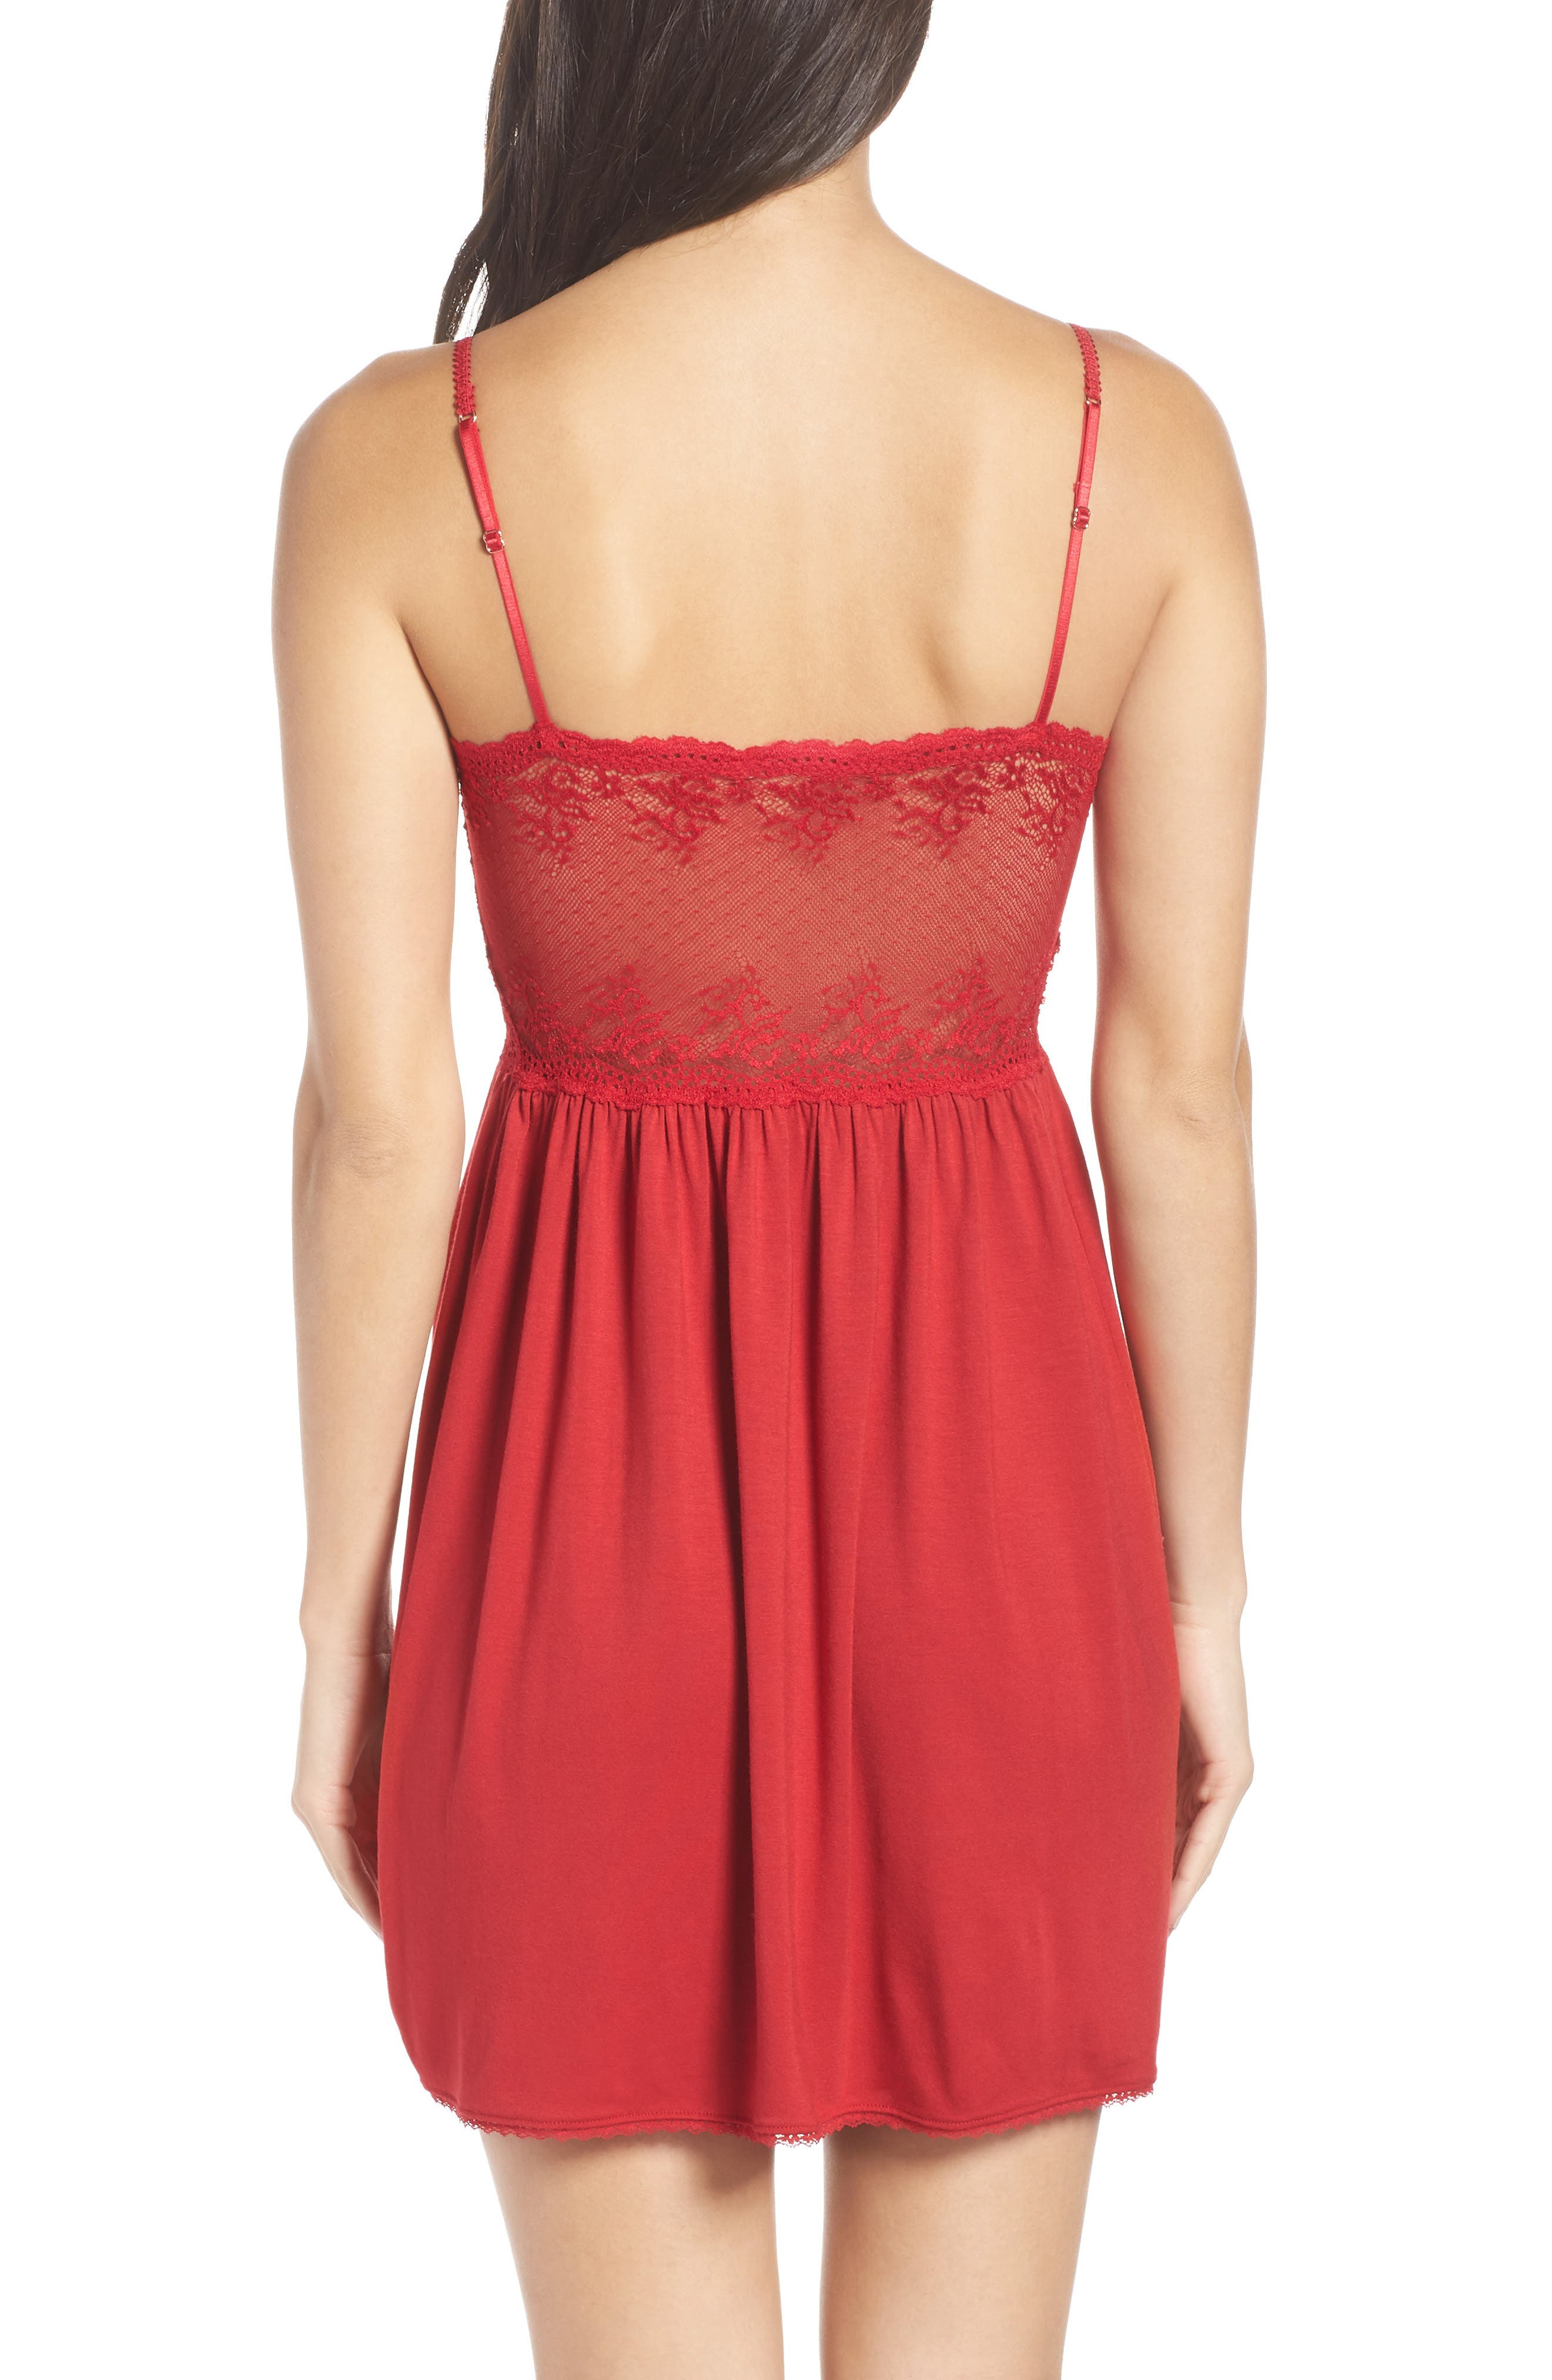 'Colette' Chemise,                             Alternate thumbnail 2, color,                             SCARLET